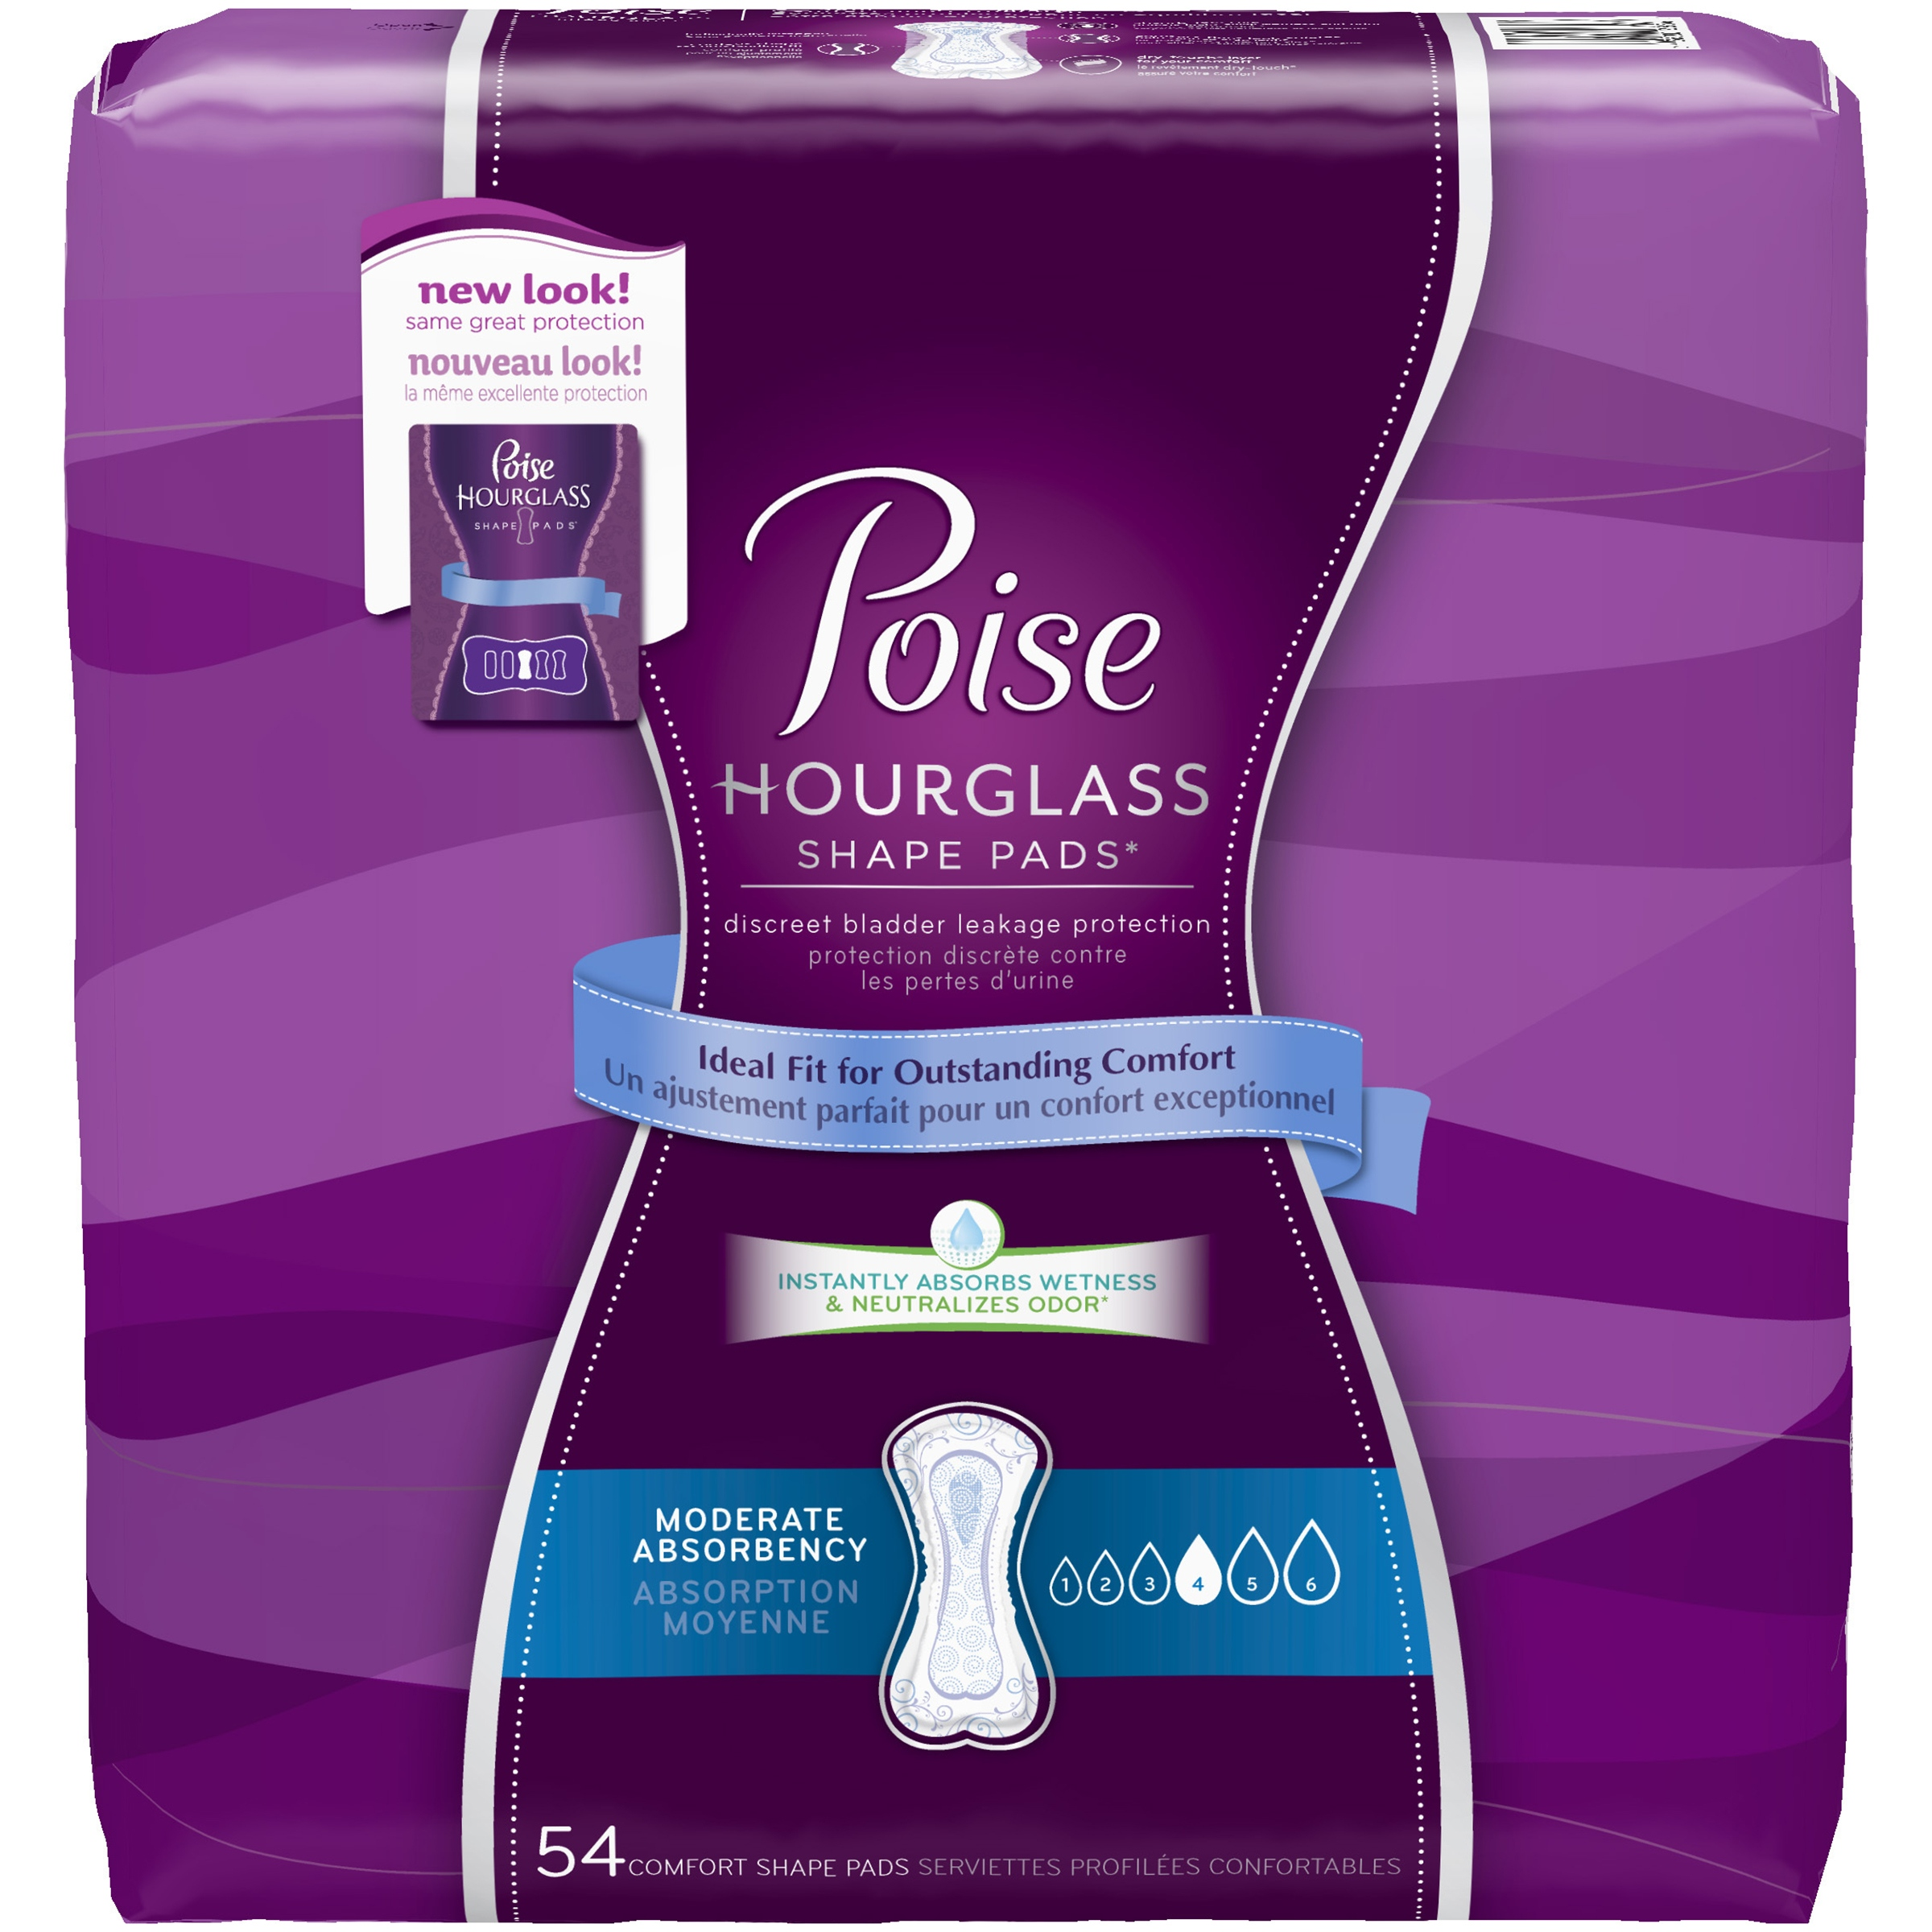 Poise Hourglass Shape Moderate Absorbency Regular Length Bladder Protection Pads, 54ct